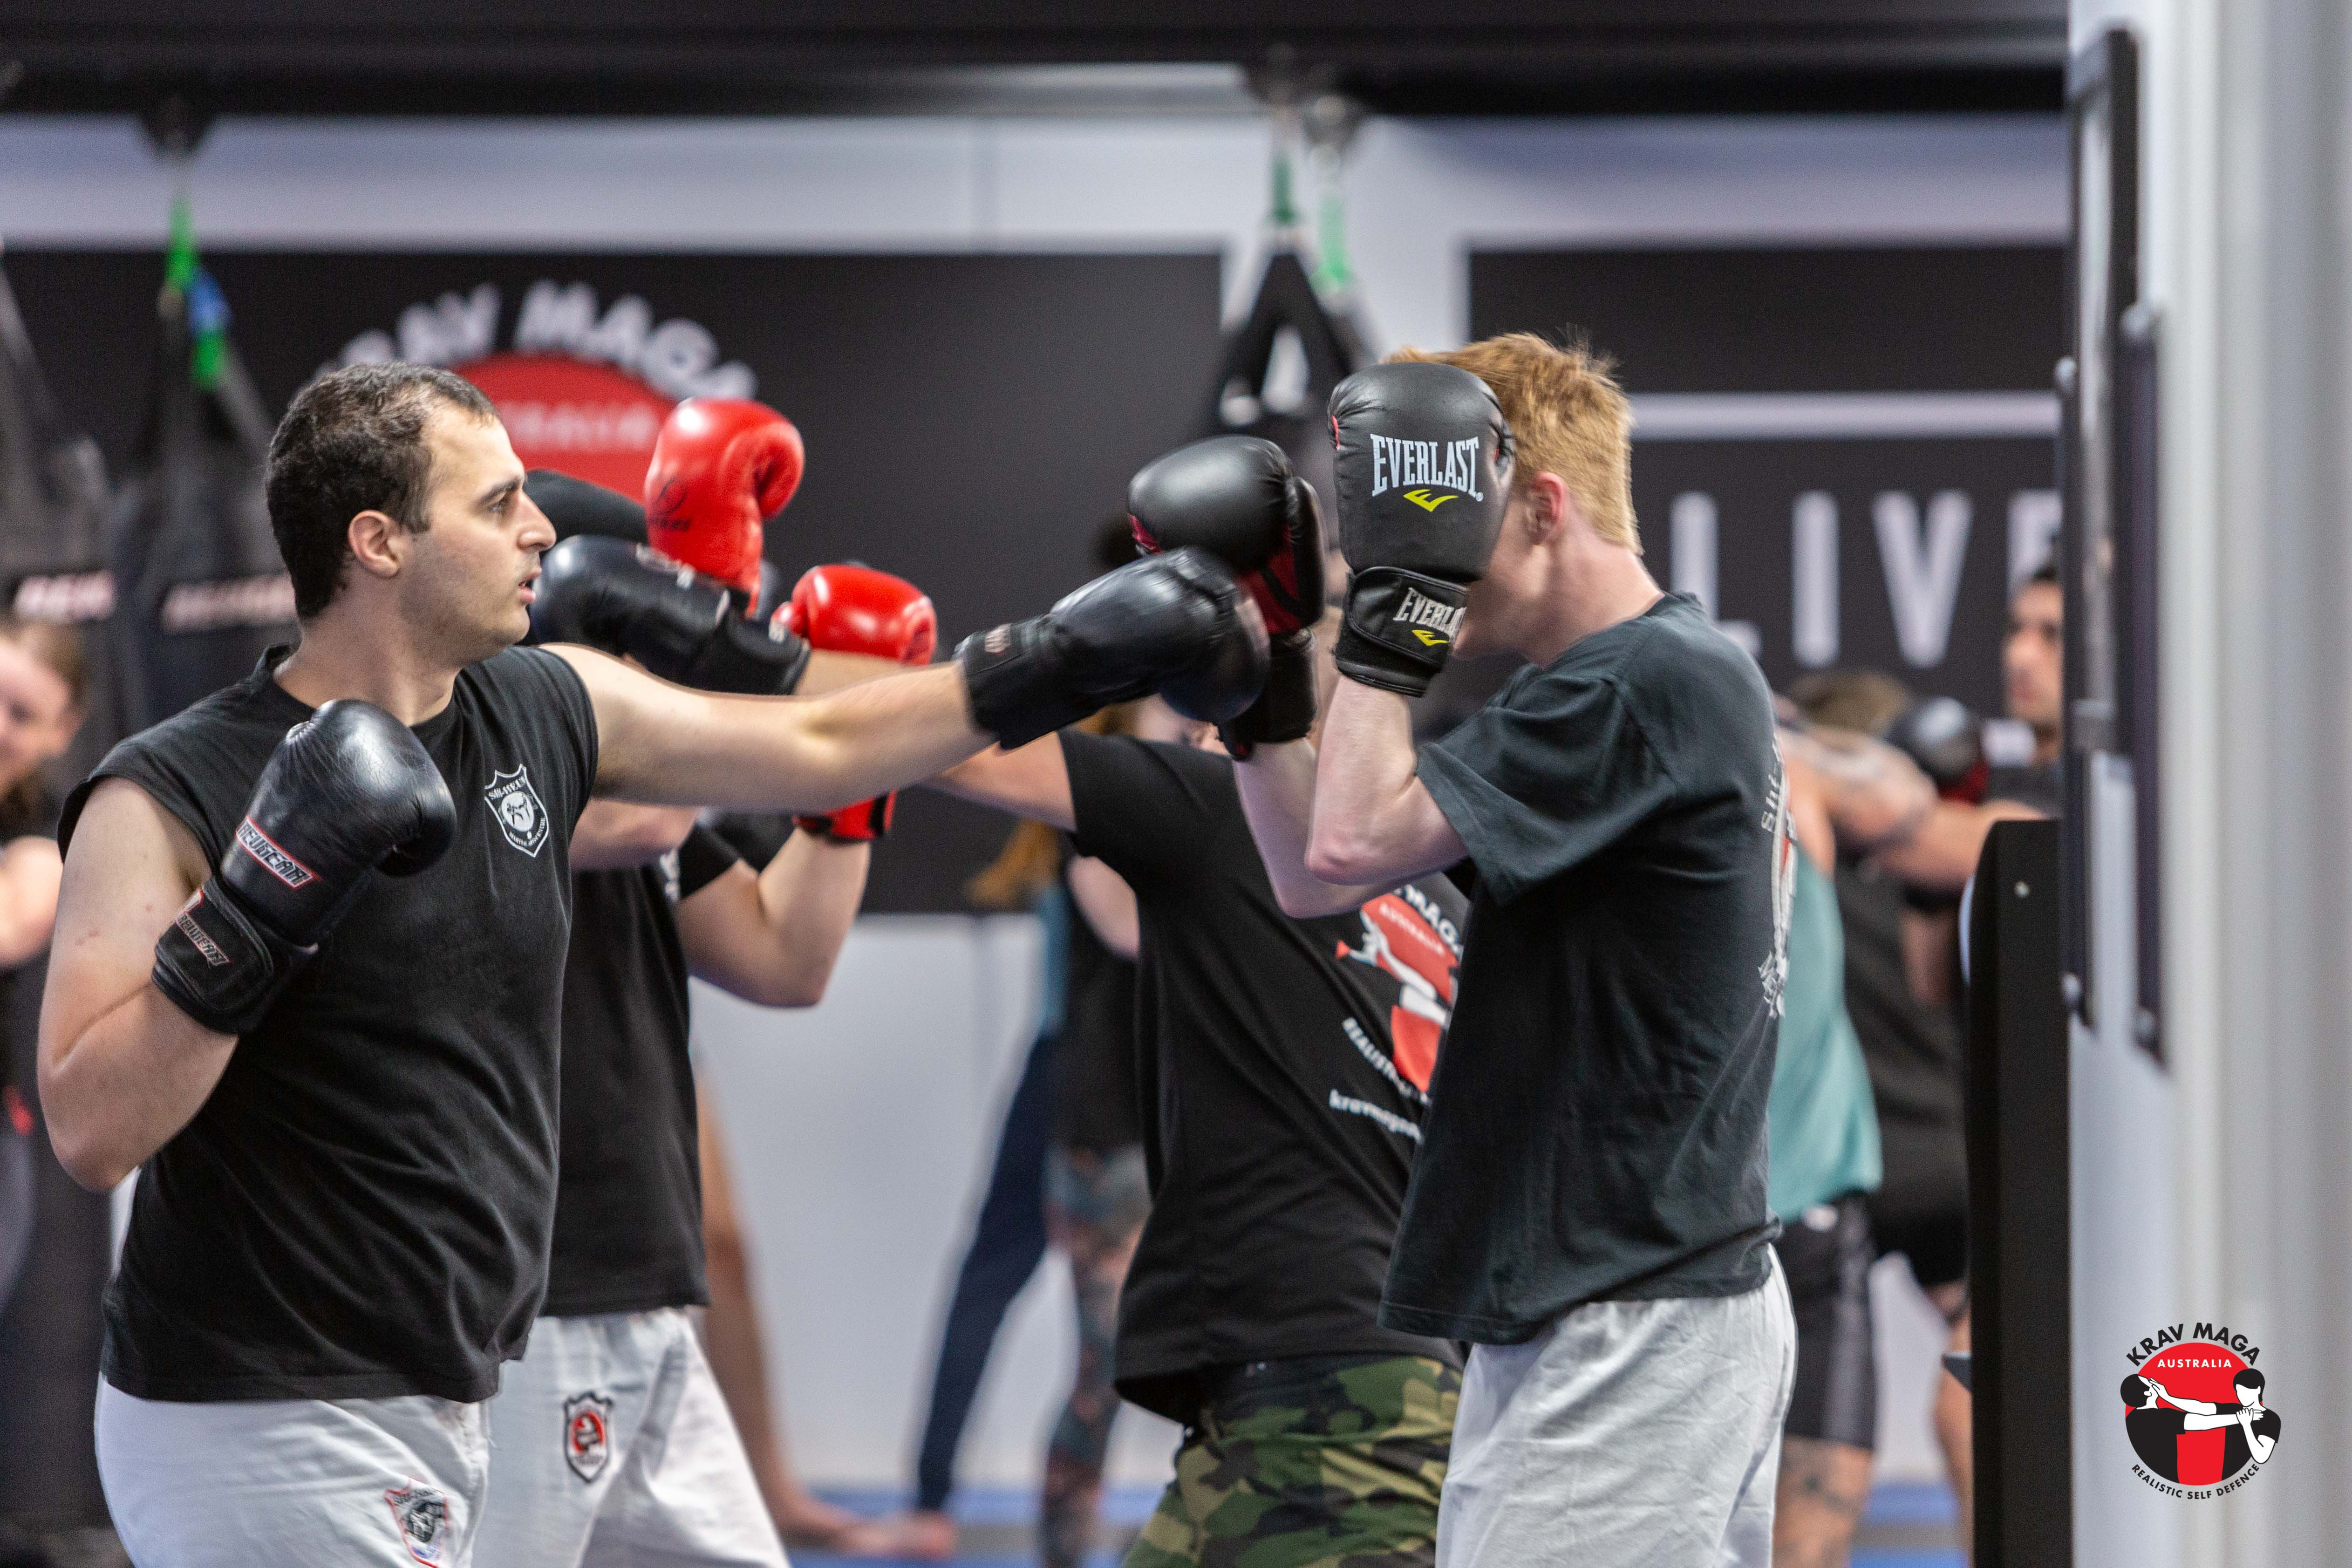 Sparring Image